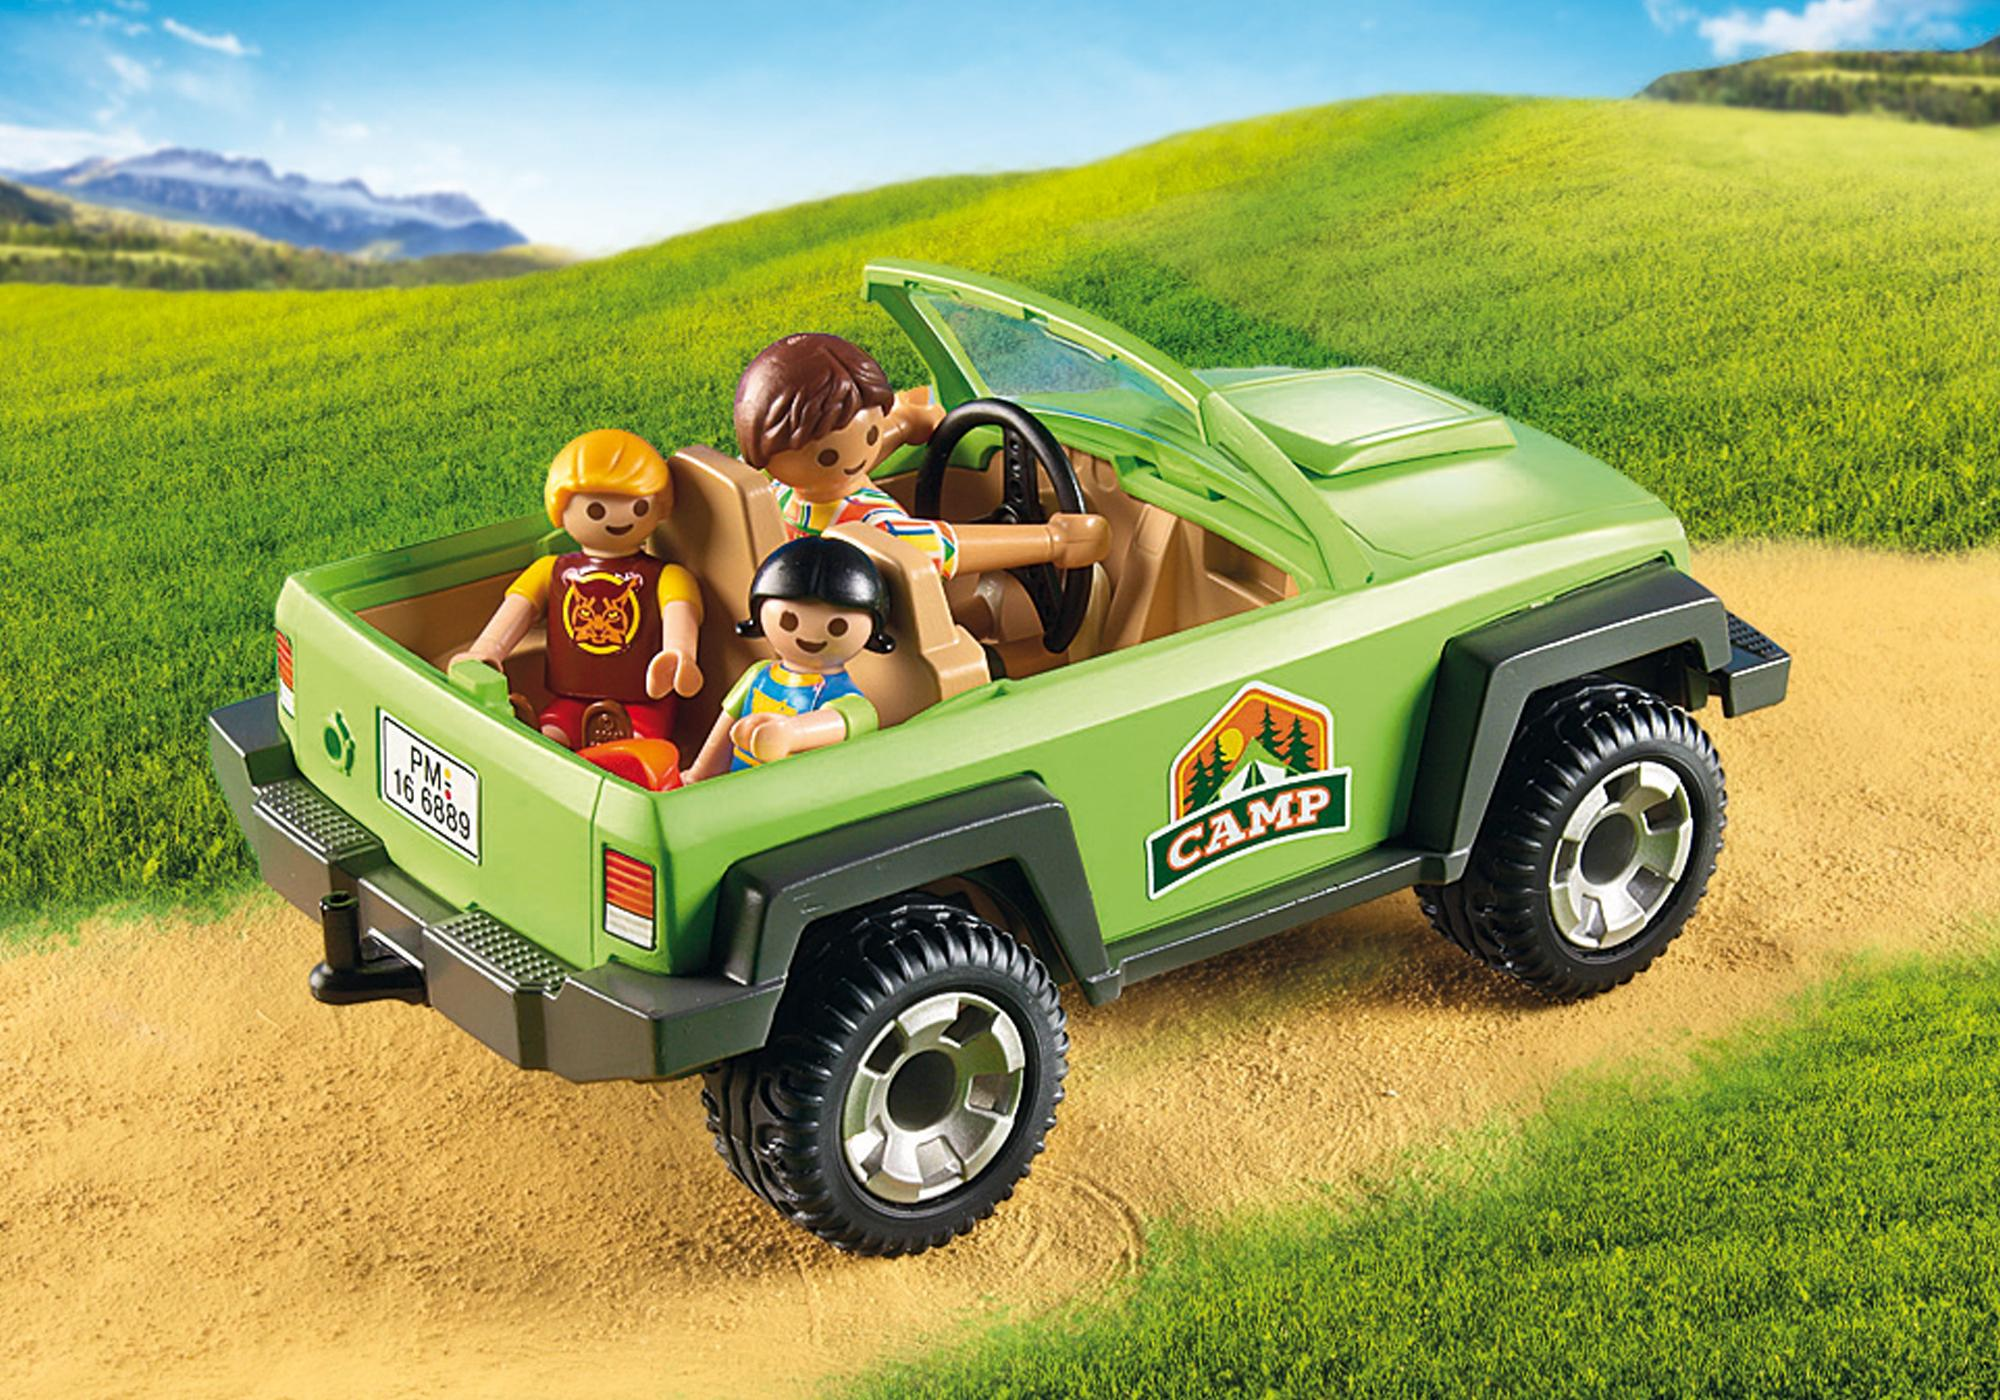 http://media.playmobil.com/i/playmobil/9154_product_extra2